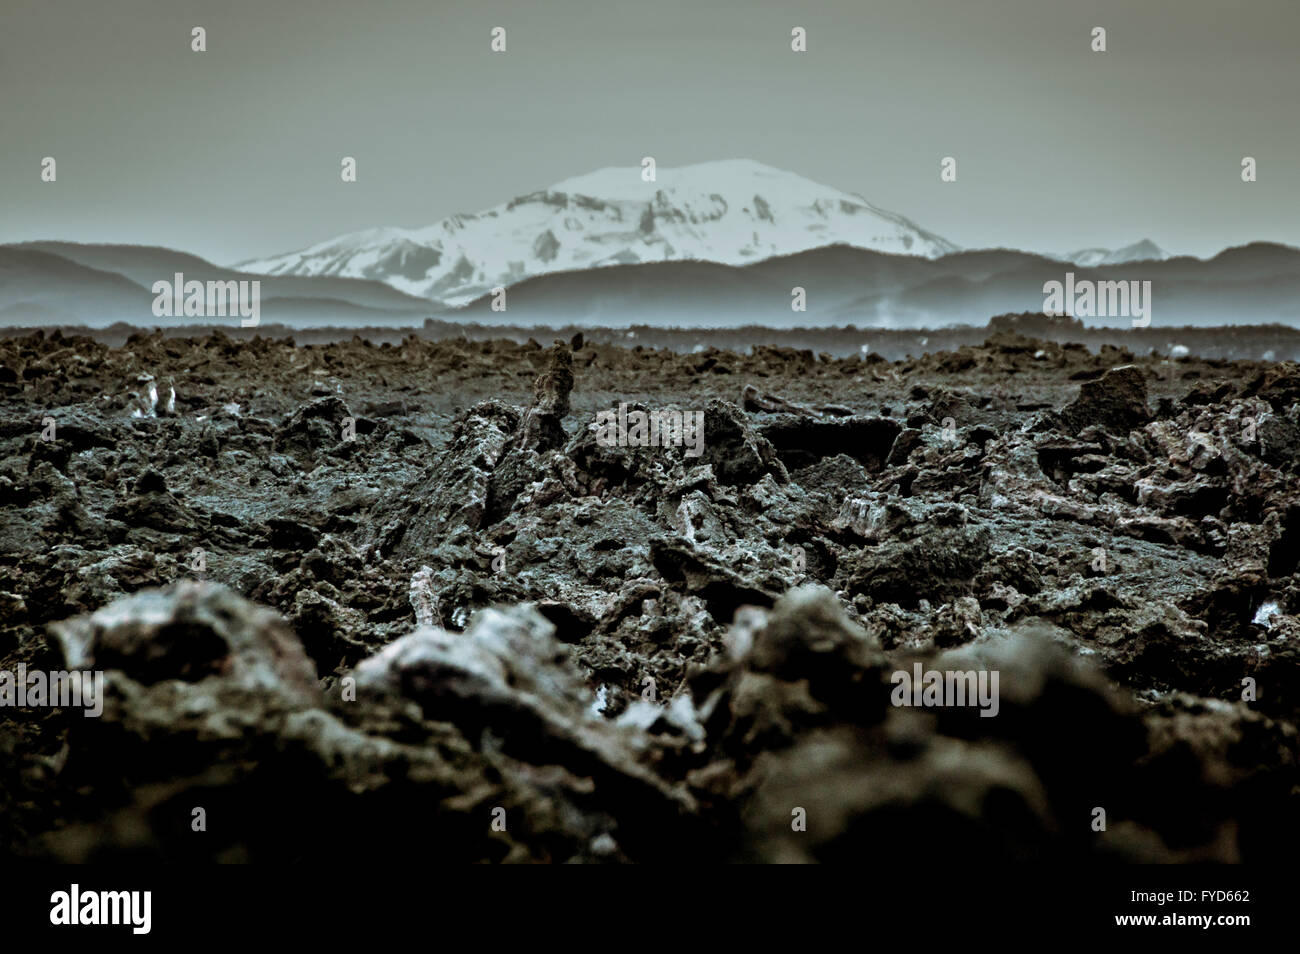 Holuhraun. Large lava field just north of the Vatnajökull ice cap, in the Icelandic Highlands, in Suð - Stock Image